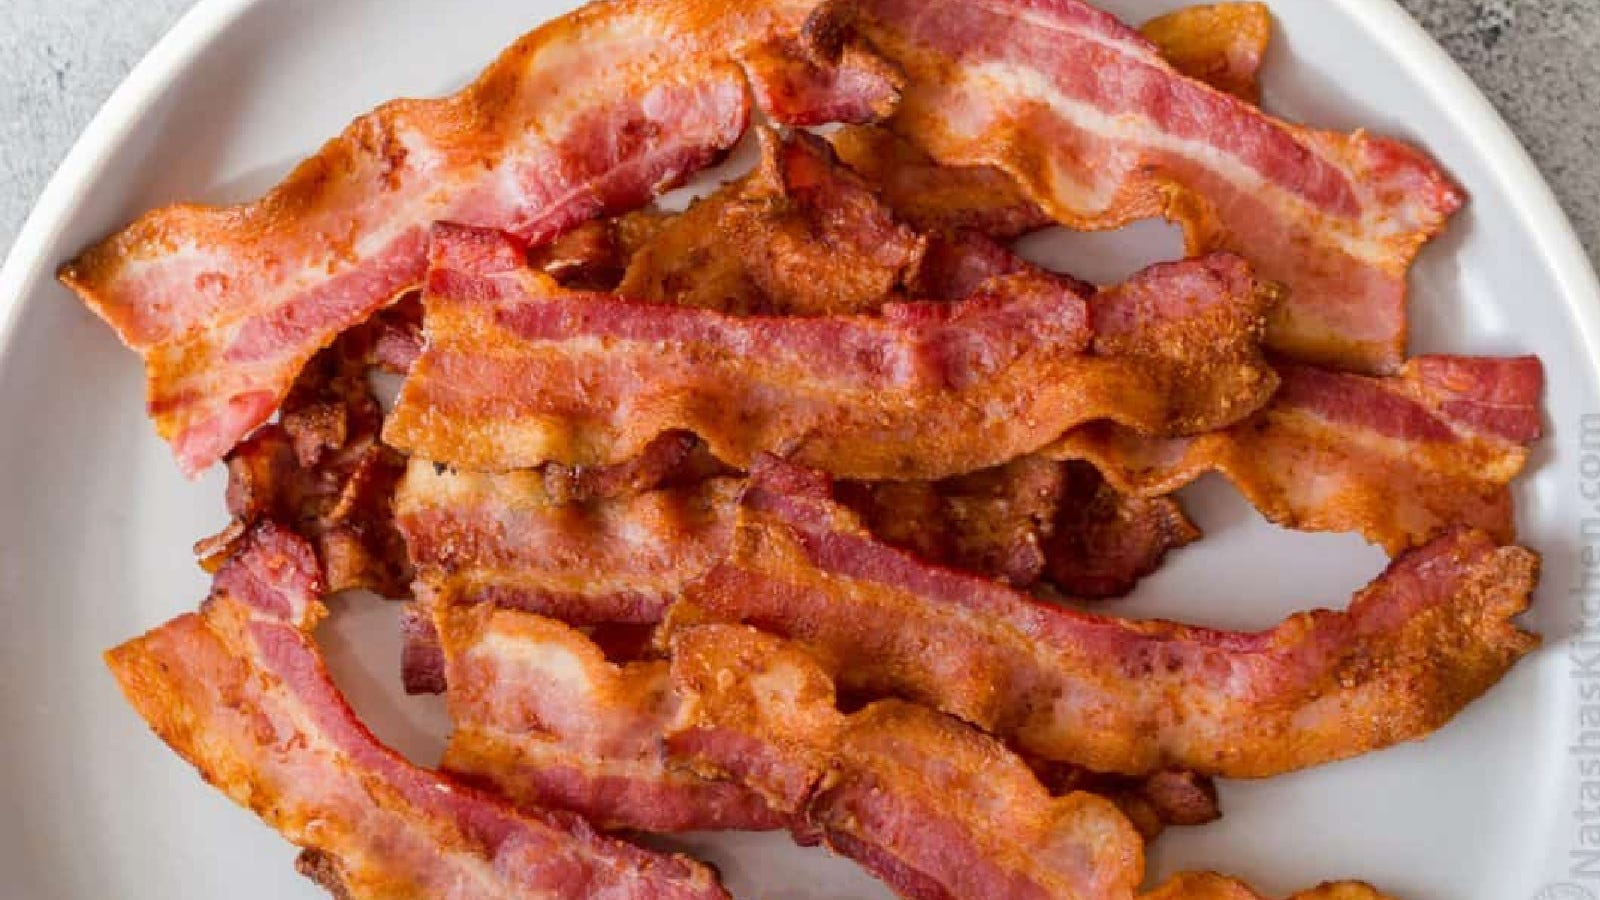 A white plate full of juicy and crispy slices of air fried bacon.